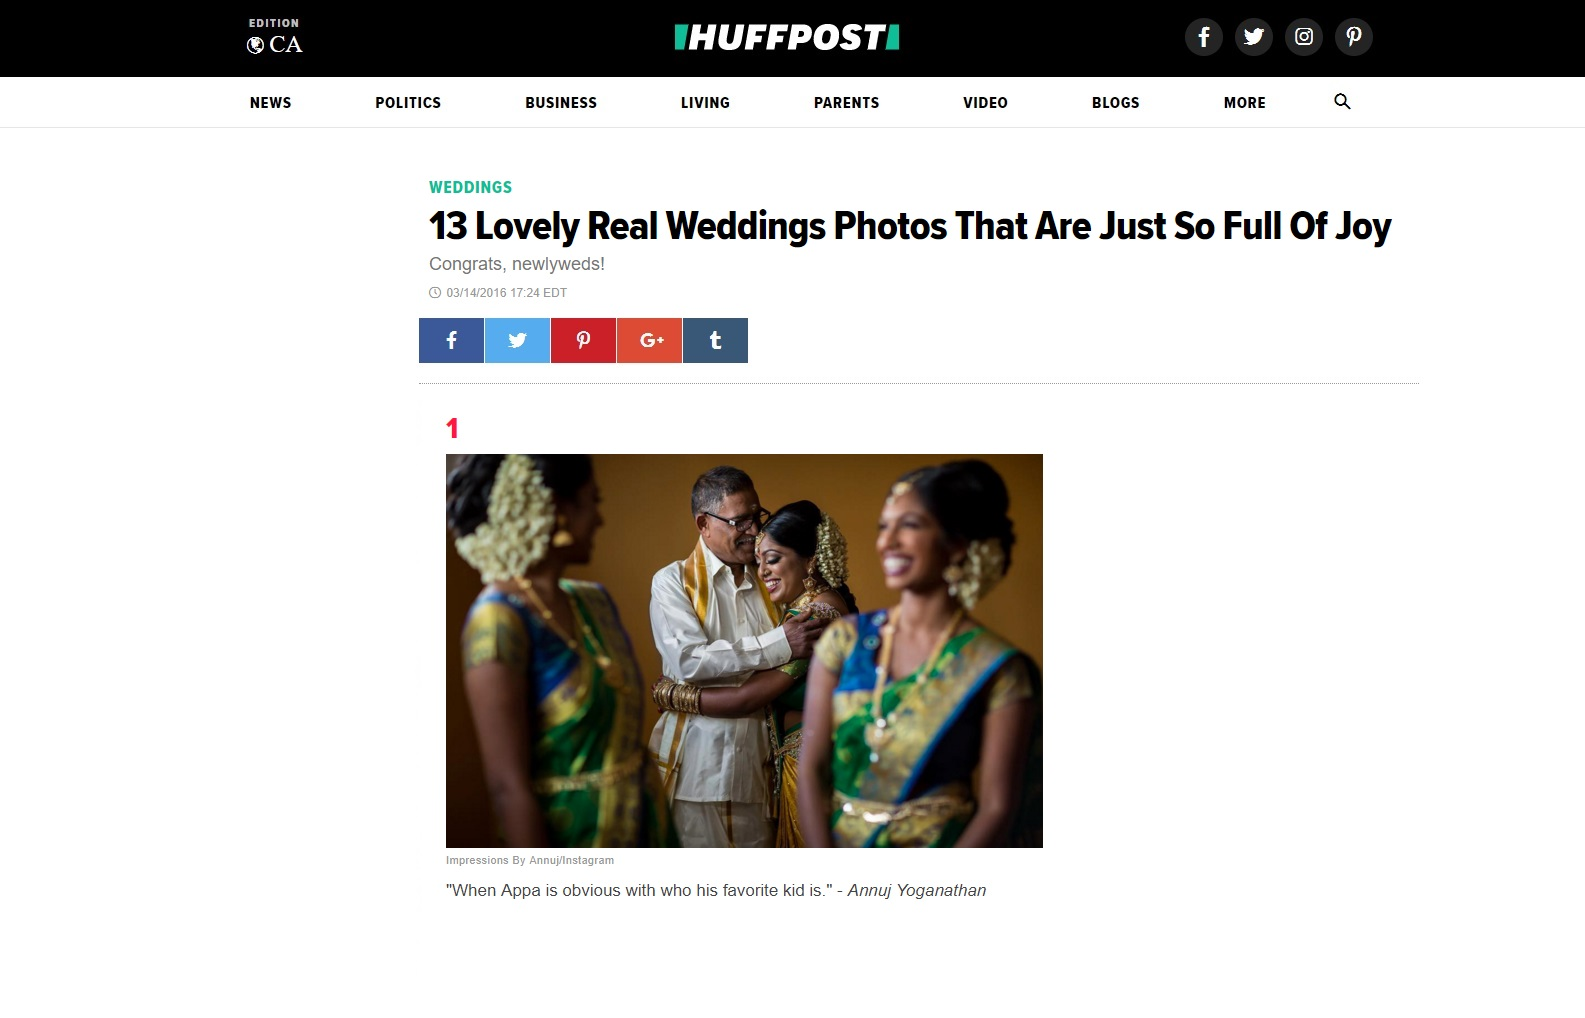 Huffington Post Feature - 13 Lovely Real Weddings Photos That Are Just So Full Of Joy